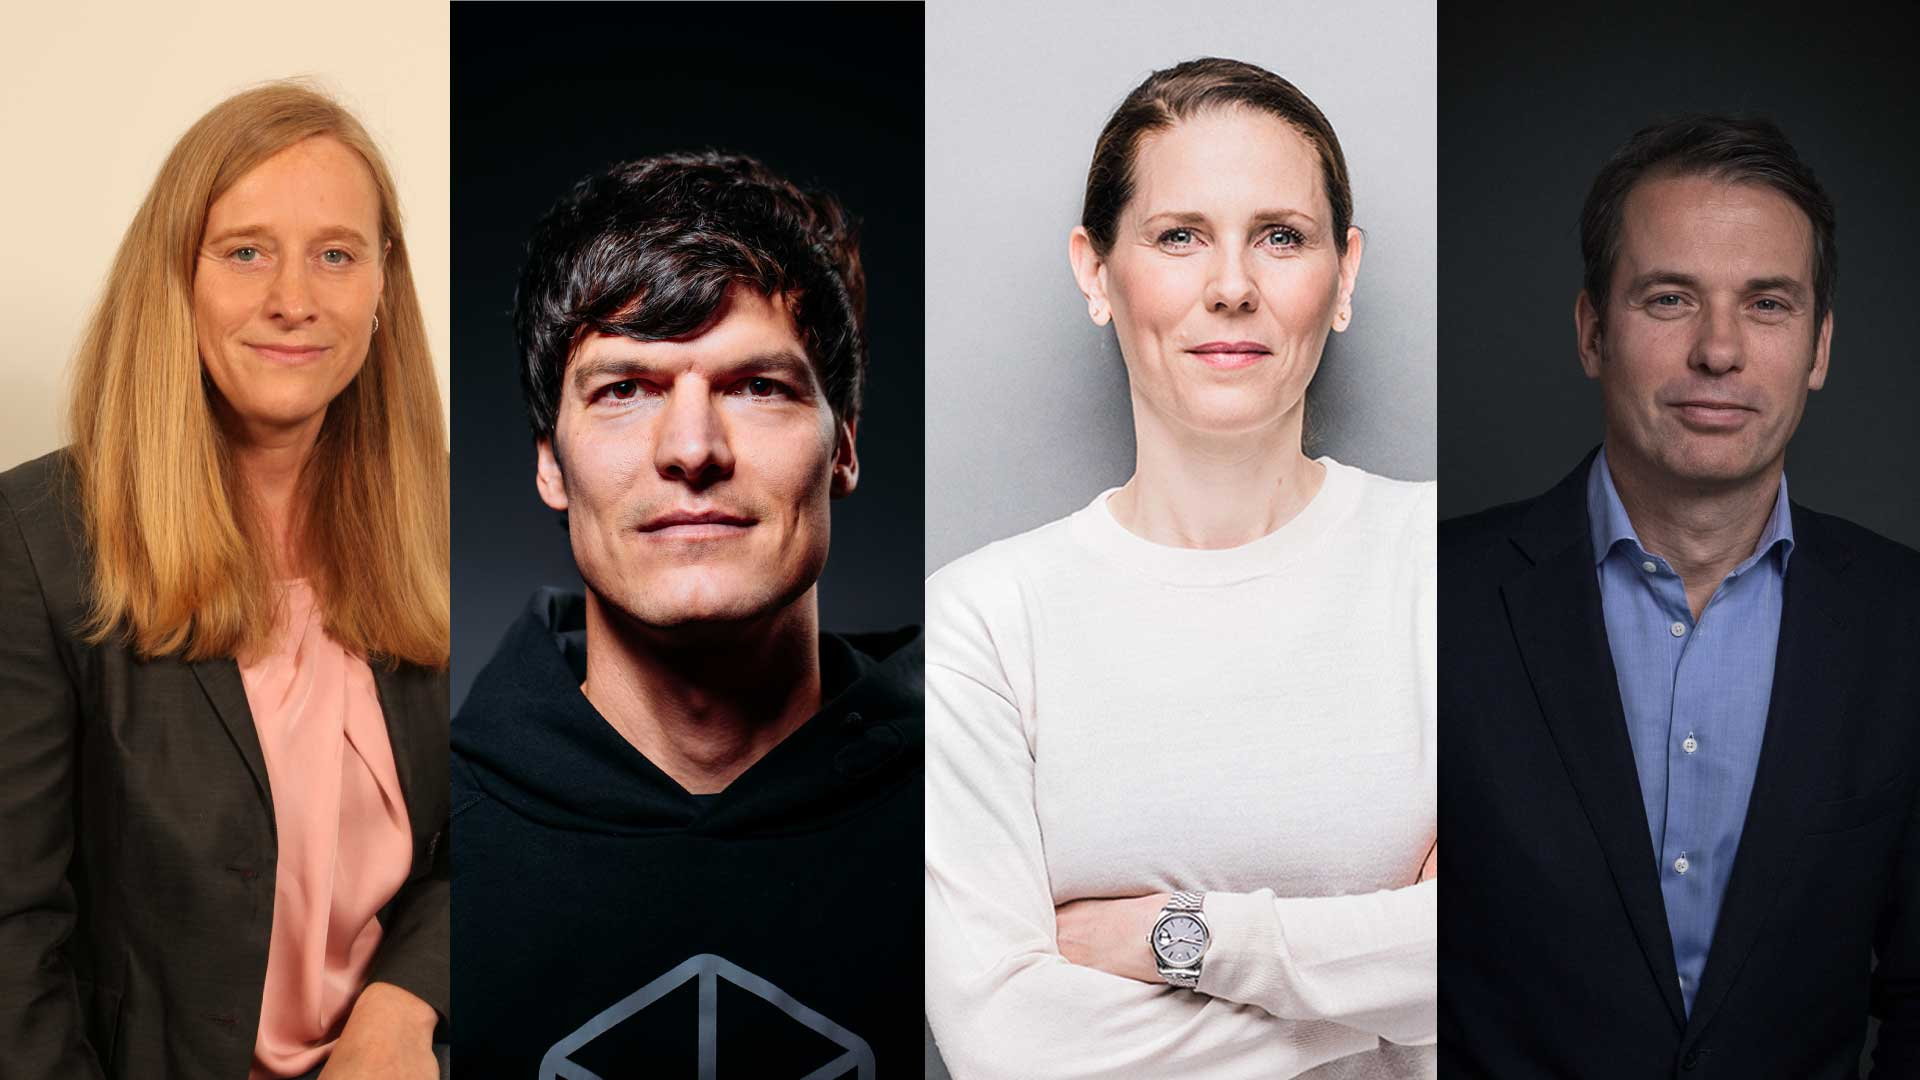 Setting the course for scaling: LINUS Digital Finance becomes a public limited company and appoints supervisory board around PE investor Verena Mohaupt and tech entrepreneur Christian Vollmann